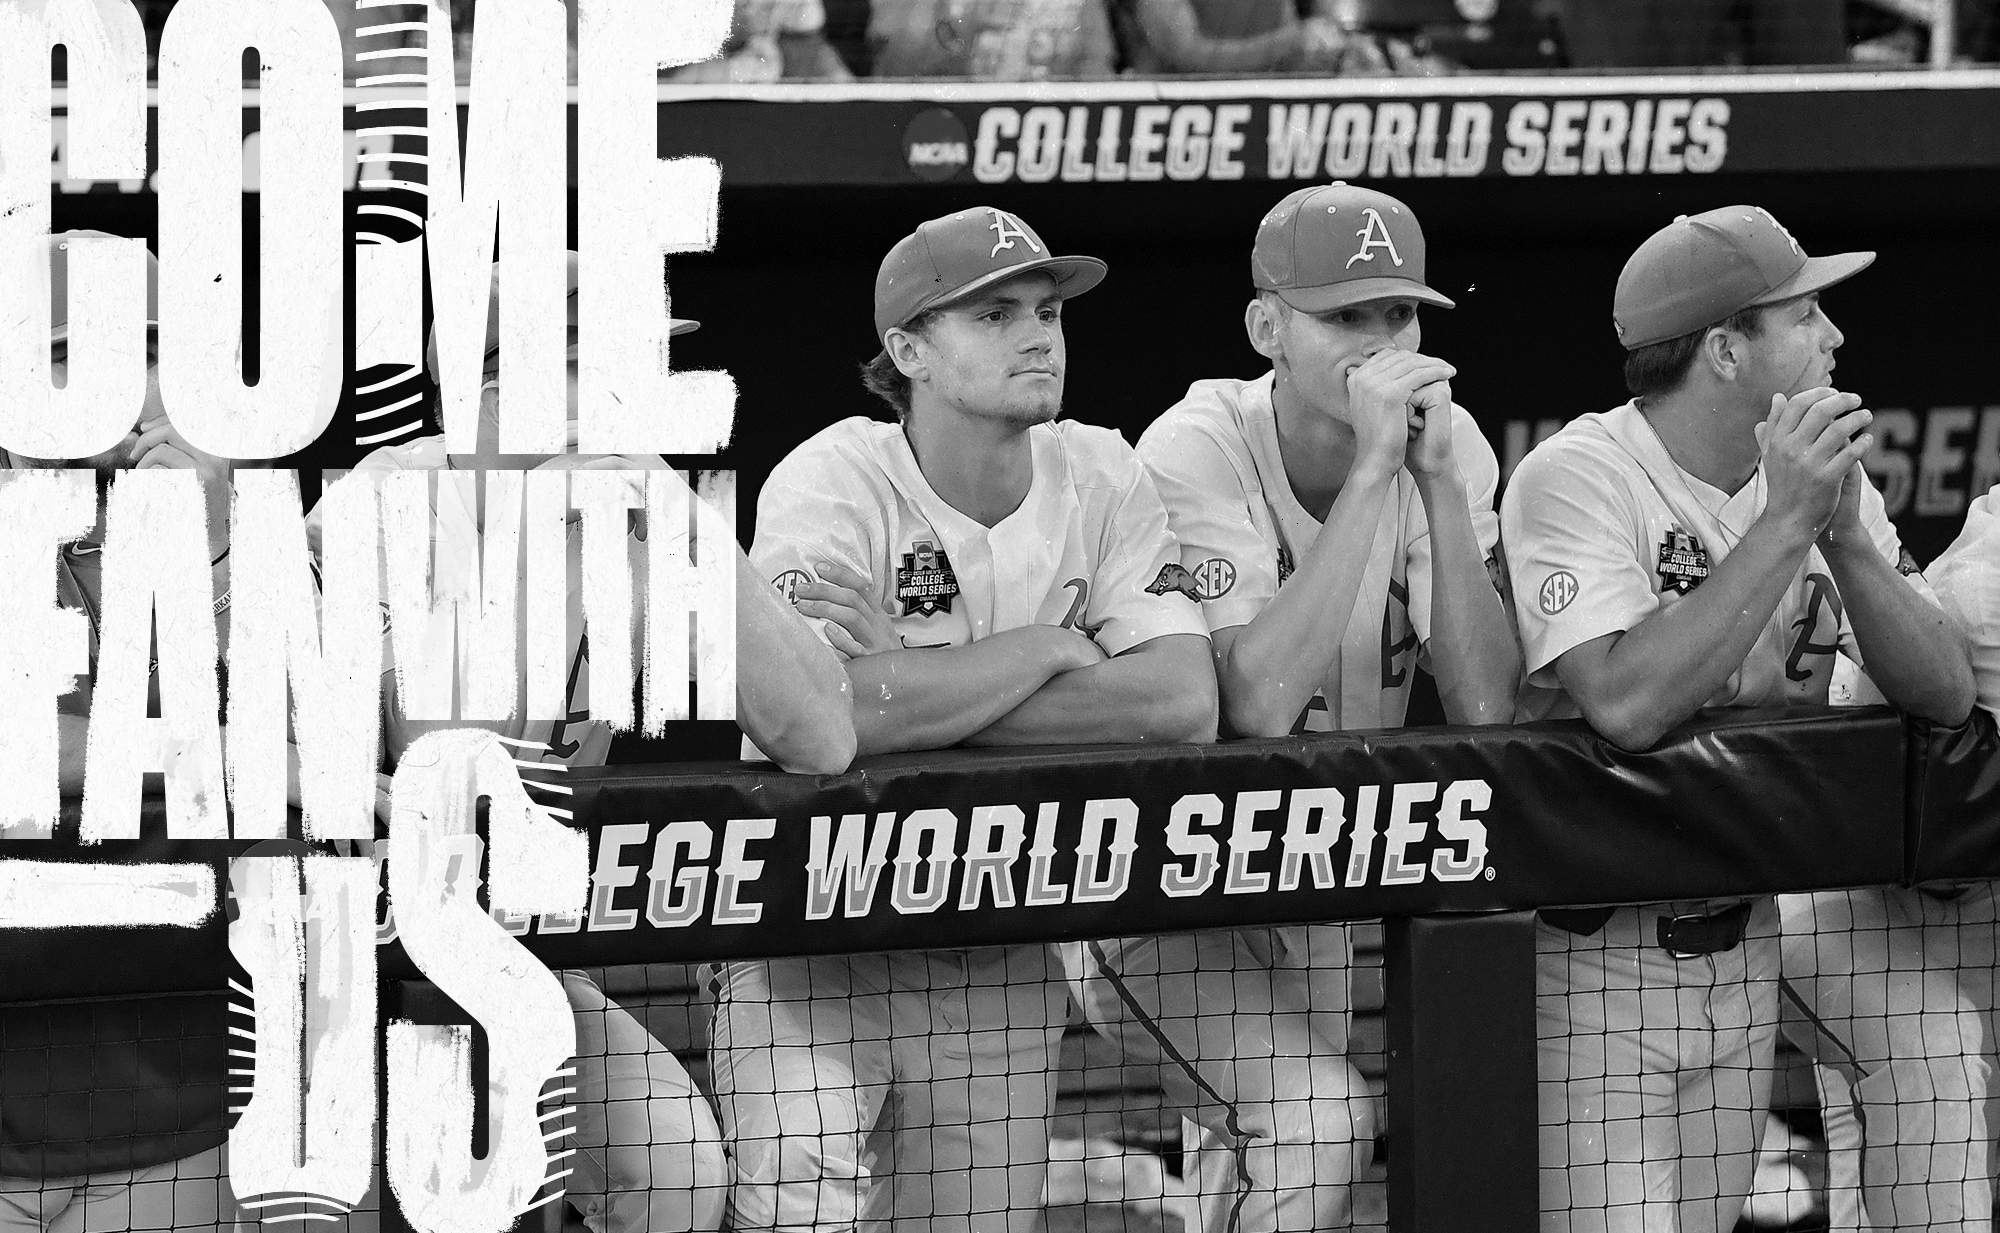 Everything you need to know about the 2019 College World Series